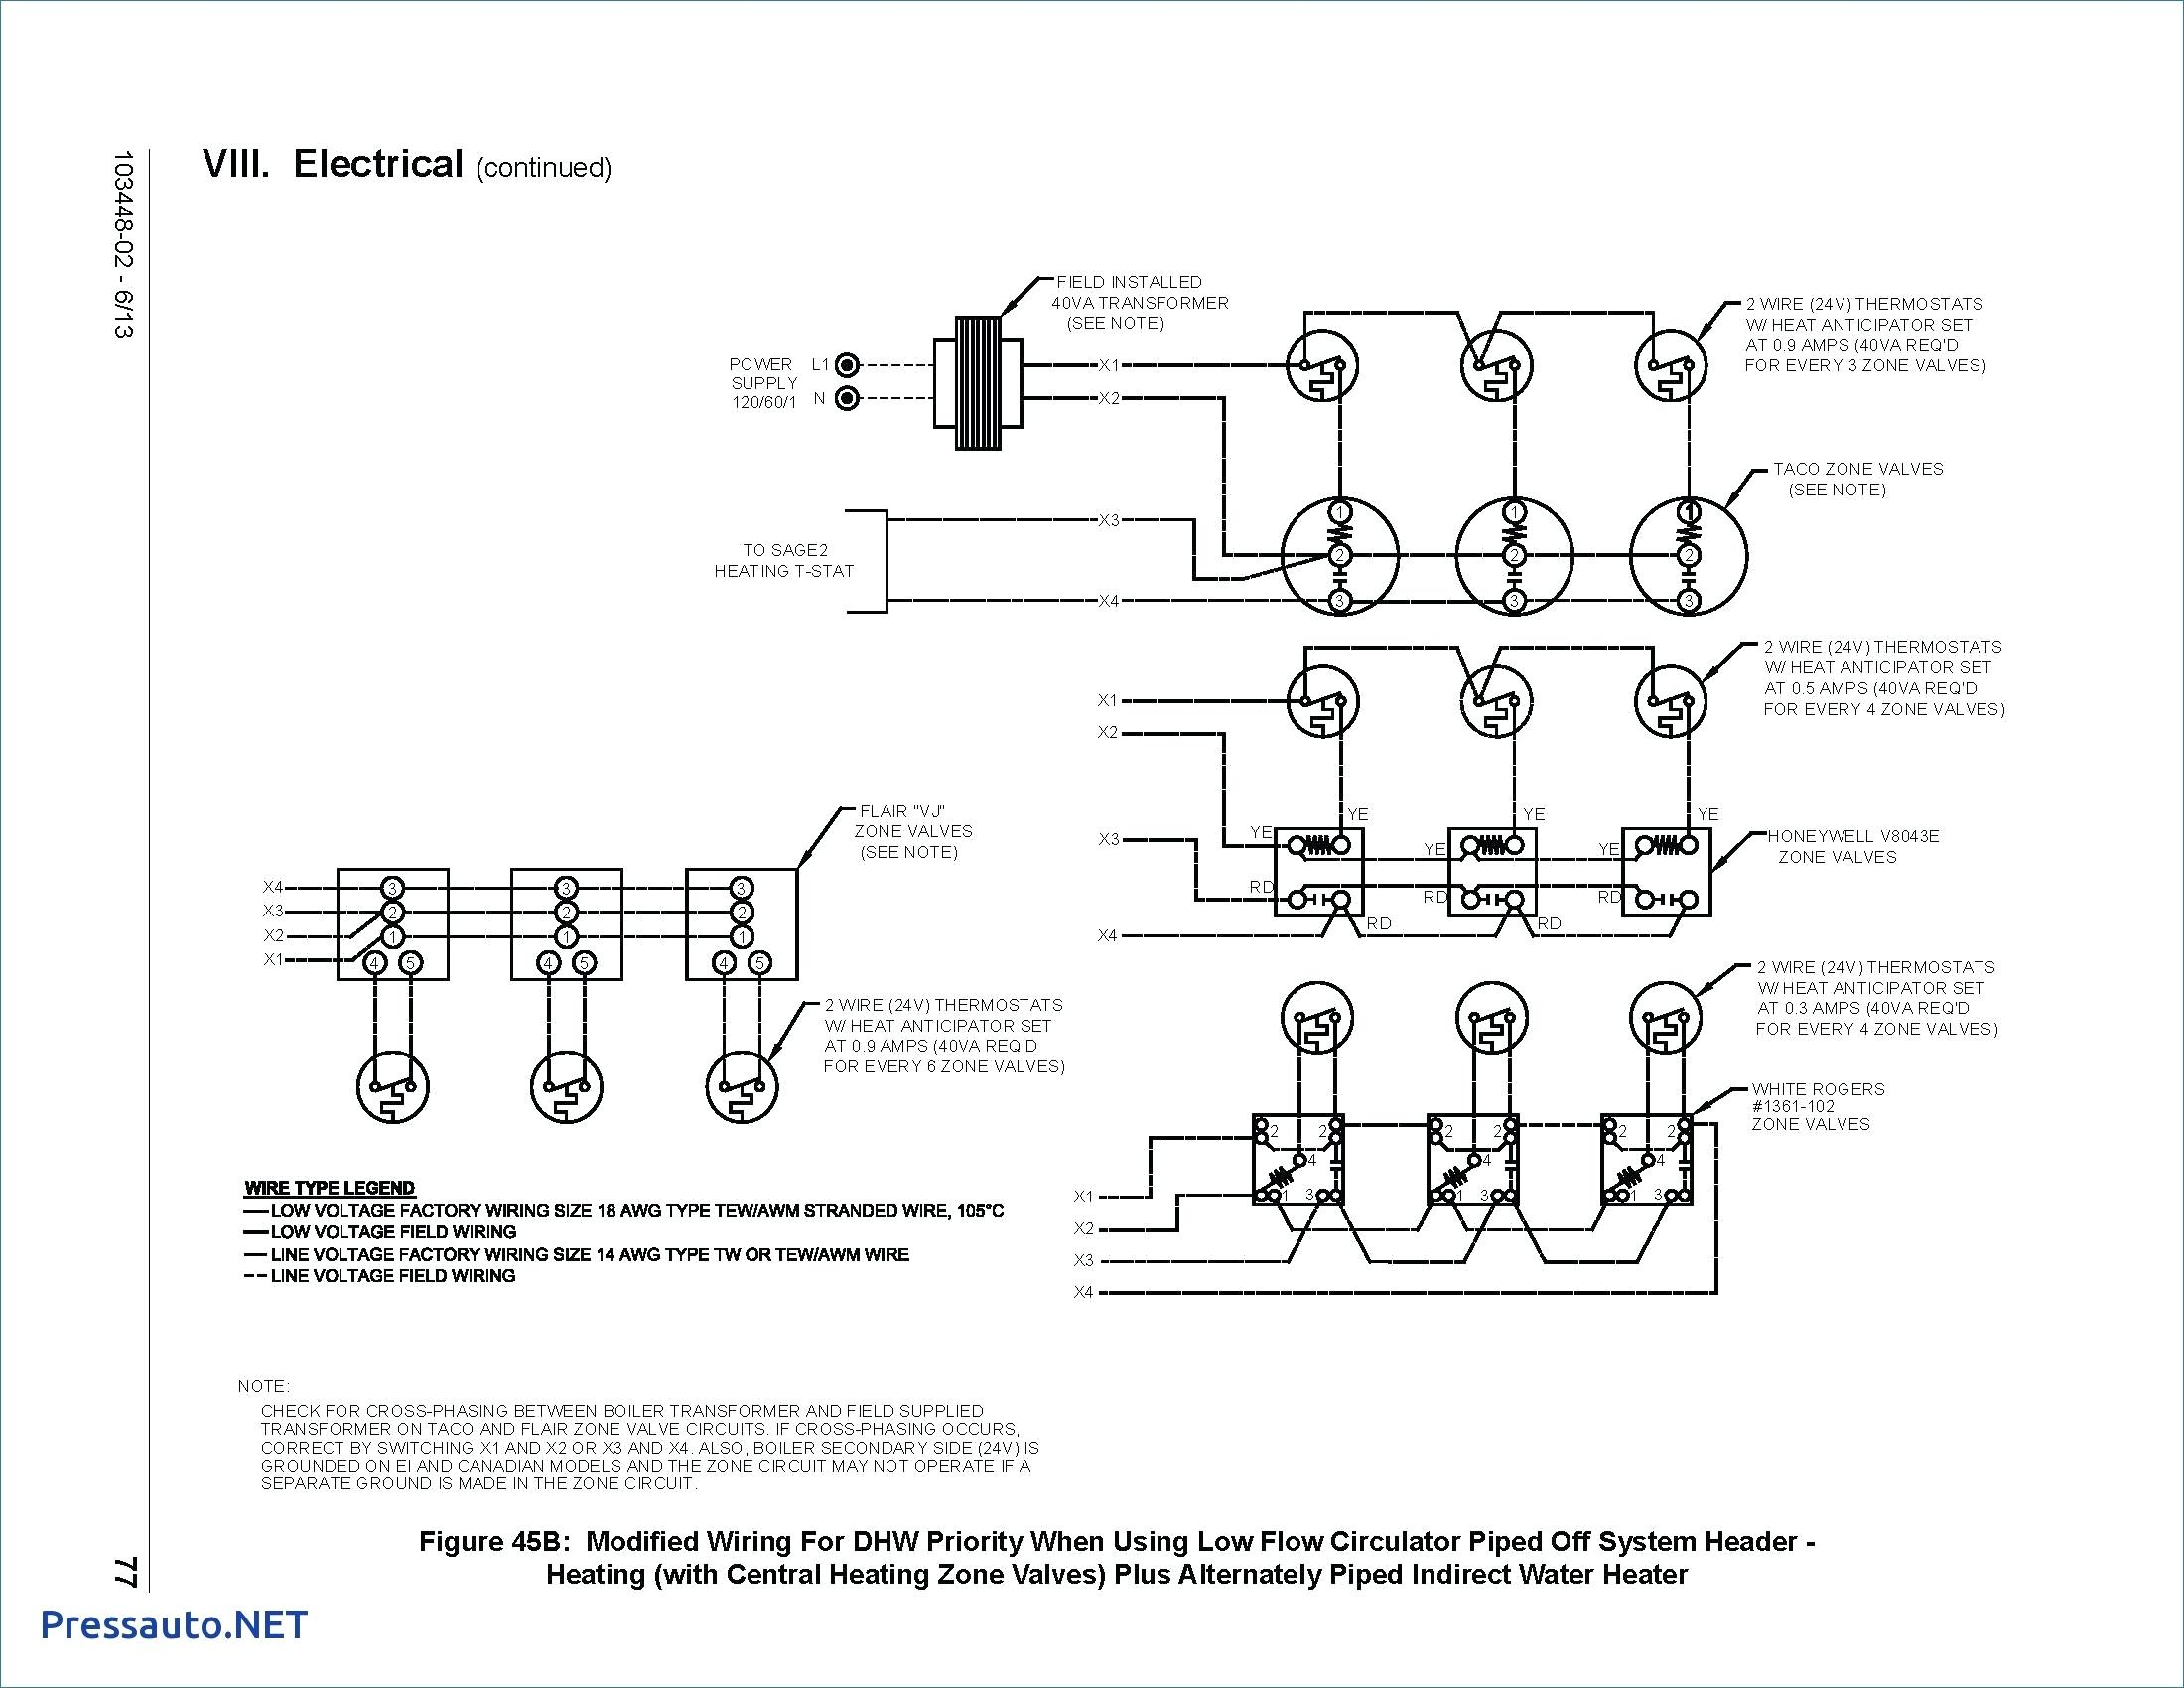 taco circulator pump wiring diagram Download-Taco Circulator Pump Wiring Diagram Lovely 24v Transformer Wiring Diagram 240v Standalone to Power Many 9-n